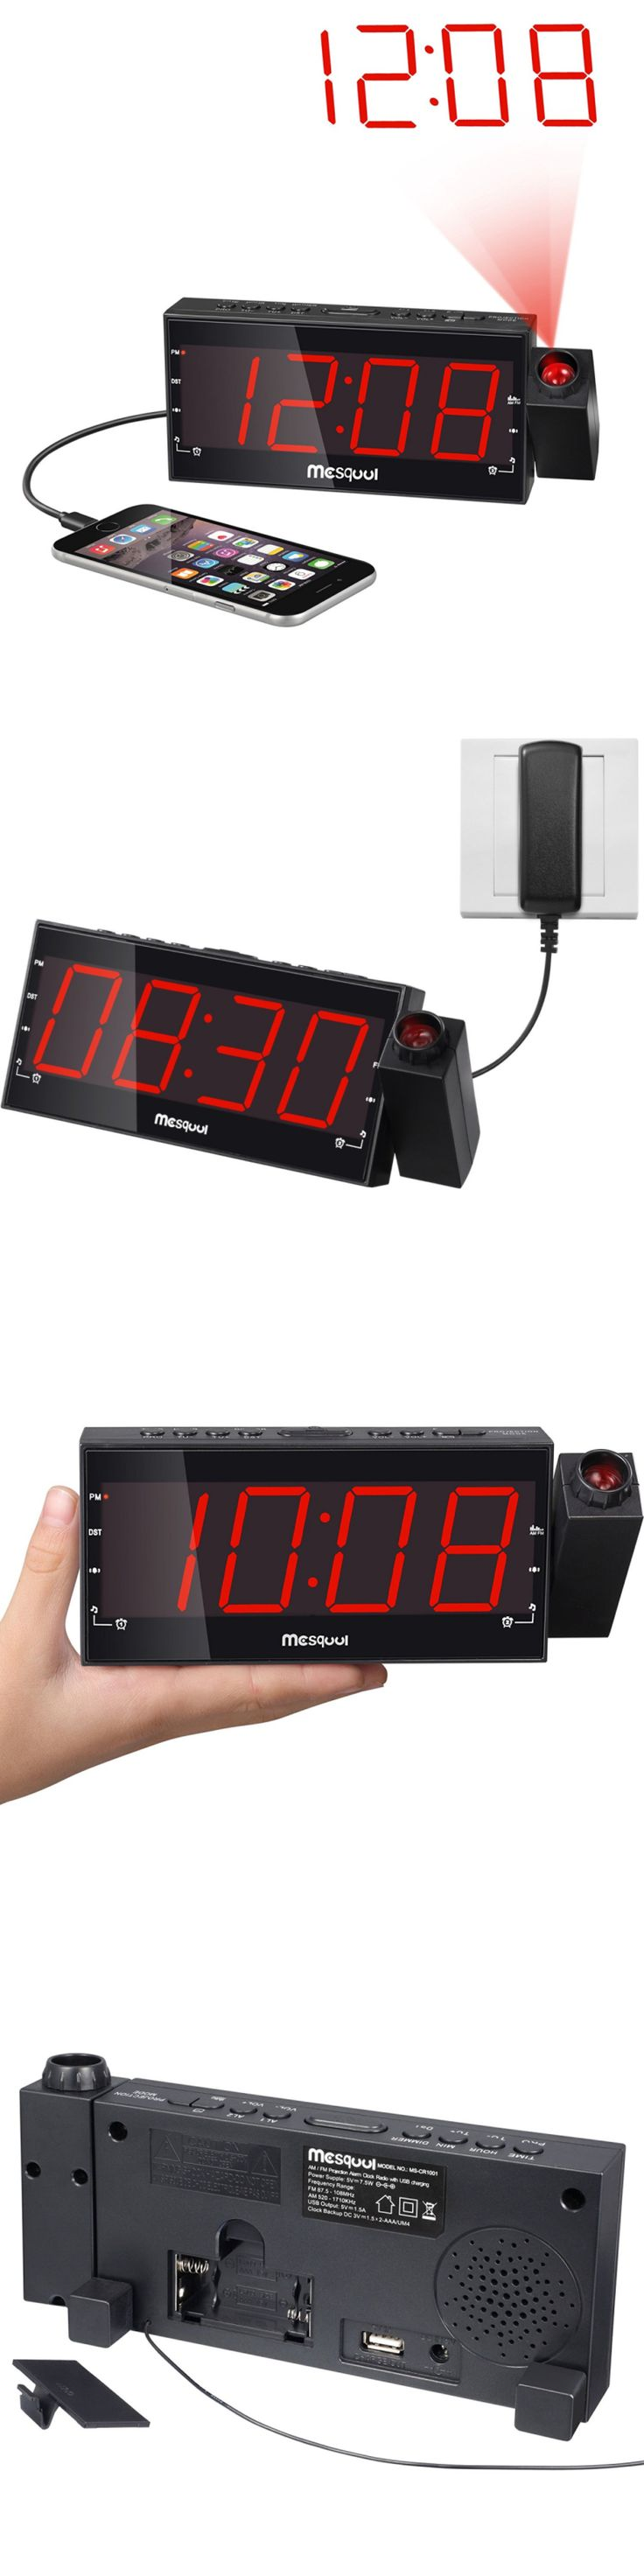 Digital Clocks and Clock Radios: Mesqool Am Fm Digital Dimmable Projection Alarm Clock Radio With 1.8 Led Displa -> BUY IT NOW ONLY: $30.7 on eBay!